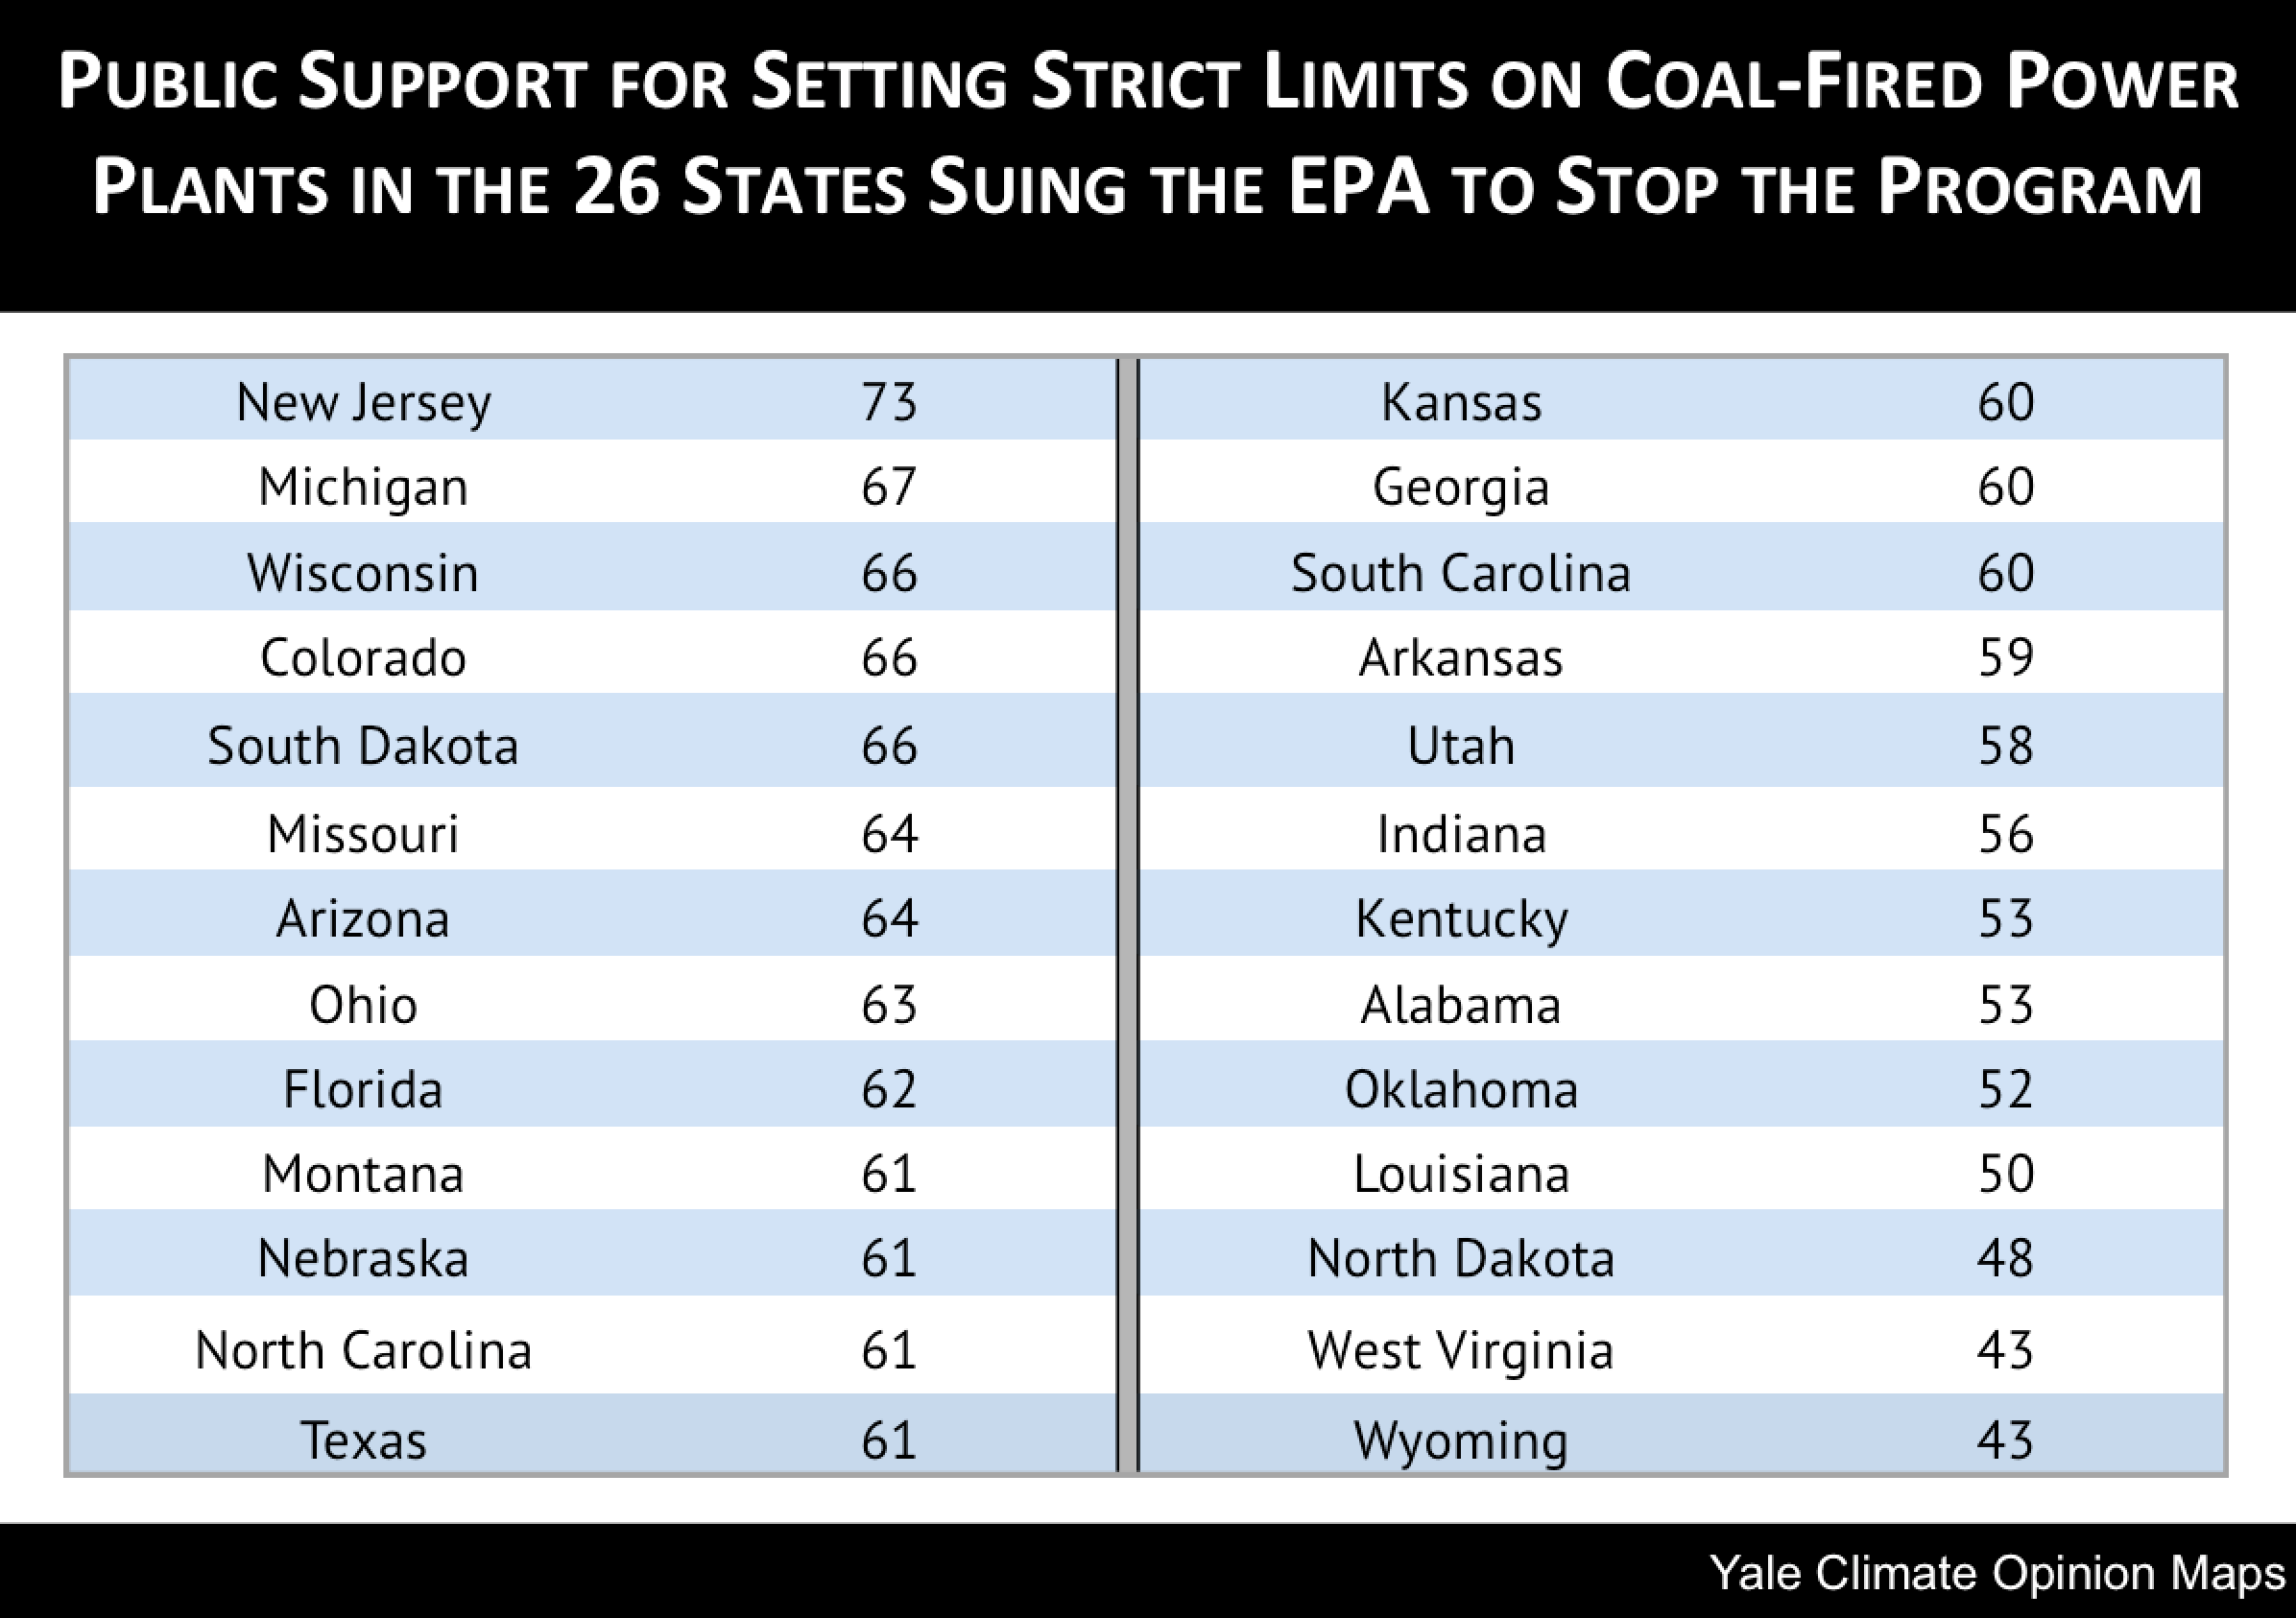 Image for Public Support for Limits on Coal-Fired Power Plants